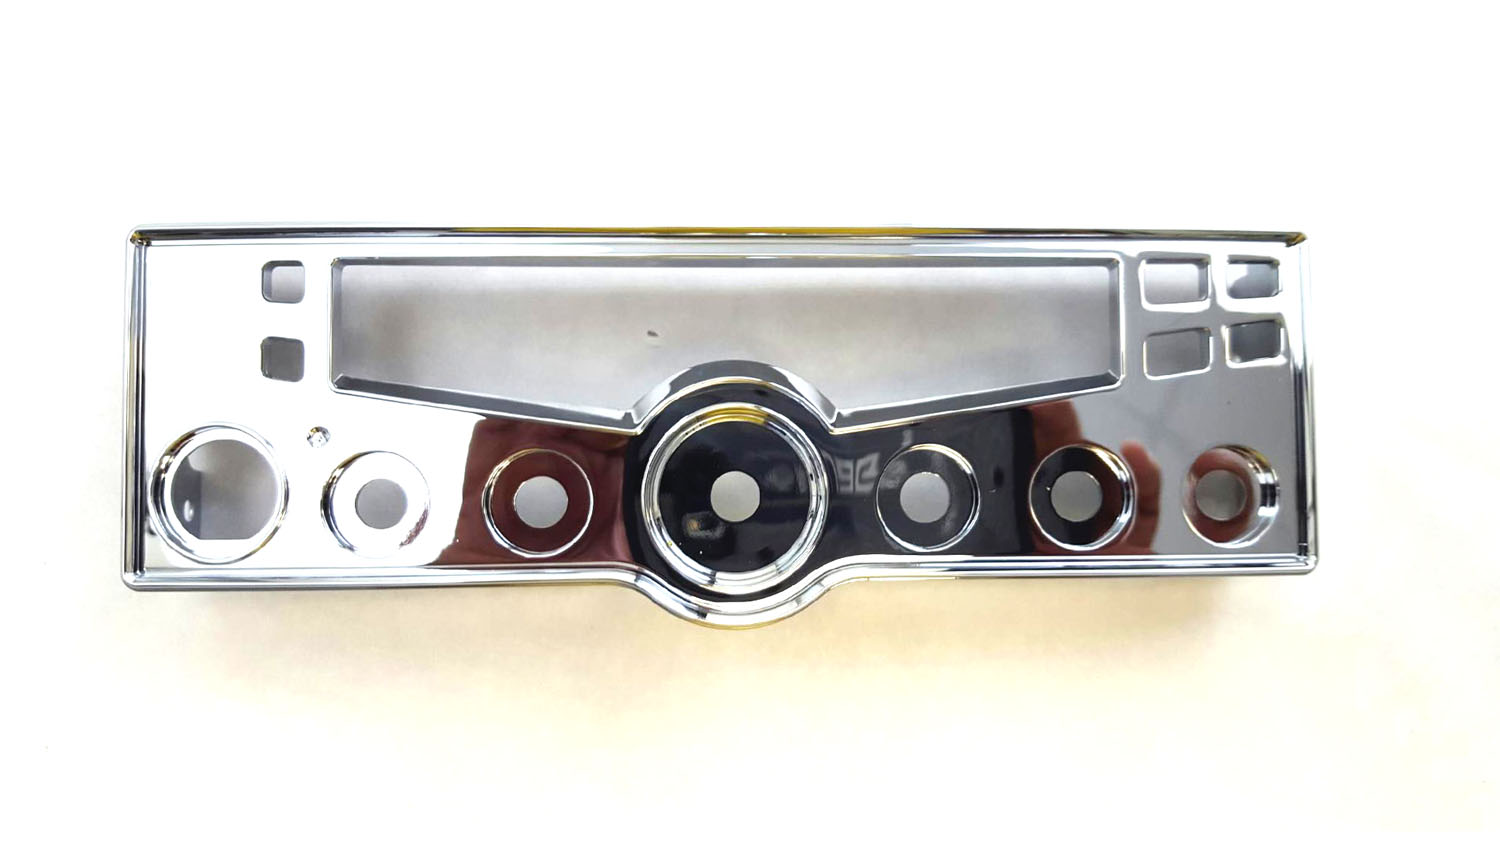 CHROME REPLACEMENT BEZEL (OUTER HOUSING) FOR COBRA C29LX CB RADIO